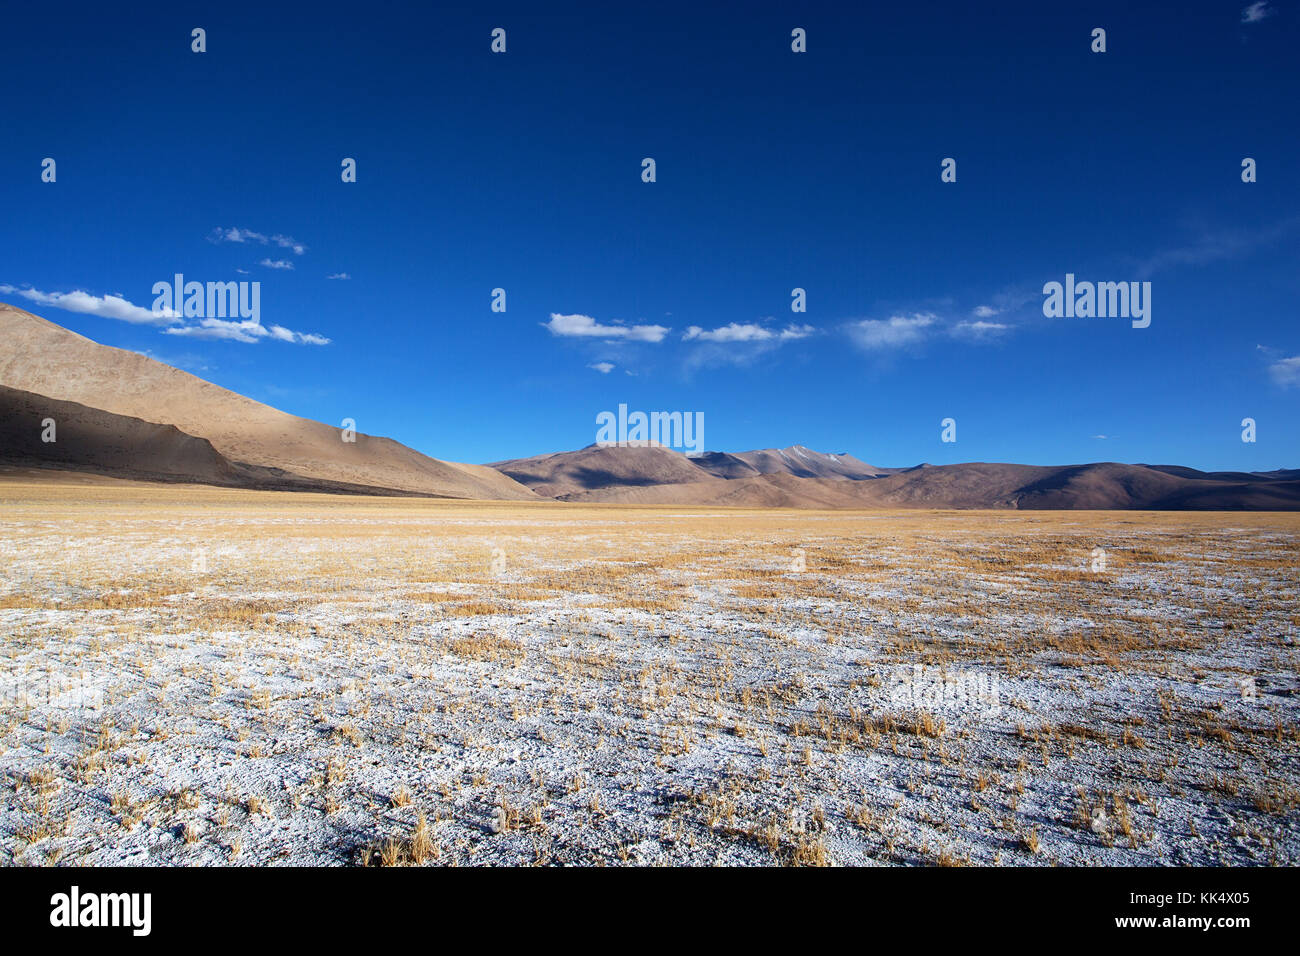 Barren landscape, himalayan peaks and layers of salt on a clear autumn day at a fluctuating salt lake Tso Kar, Ladakh, - Stock Image